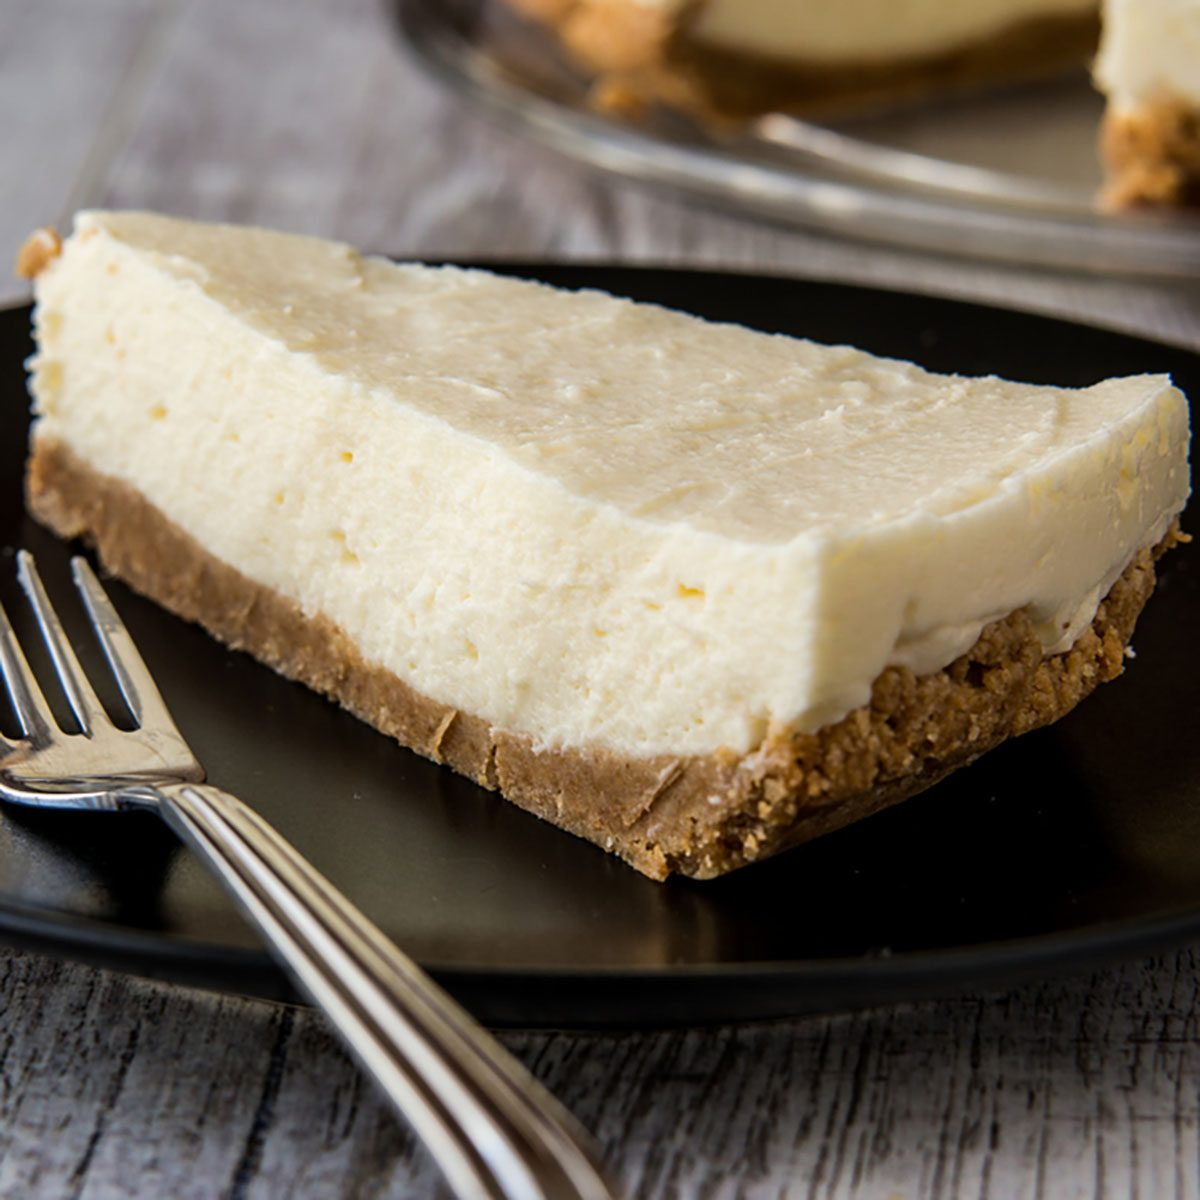 Homemade New York Cheesecake with fork